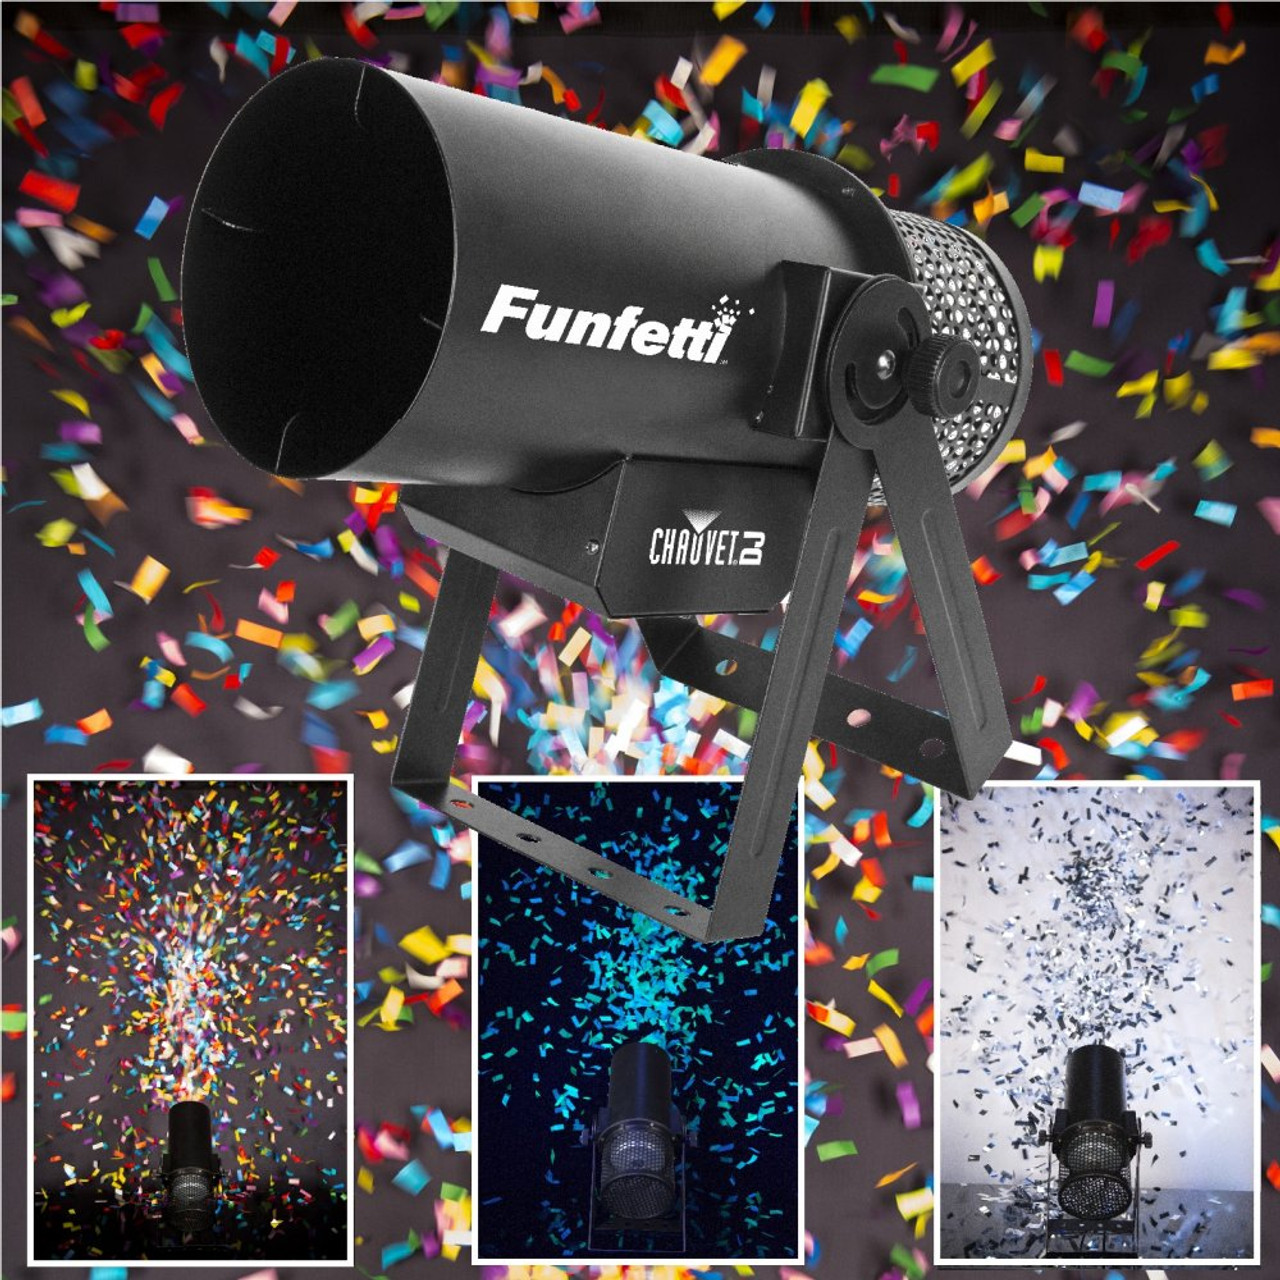 confetti popper, confetti blaster, confetti cannon, party cannon, confetti machine, confetti, co2 confetti machine, confetti blowing machine, confetti blower, special equipment, special effects, nightclub confetti machine, concert confetti machines, blower, blaster, co2 machine, DMX CONTROL CONFETTI BLOWER, DMX CONTROL CO2 CONFETTI BLOWER